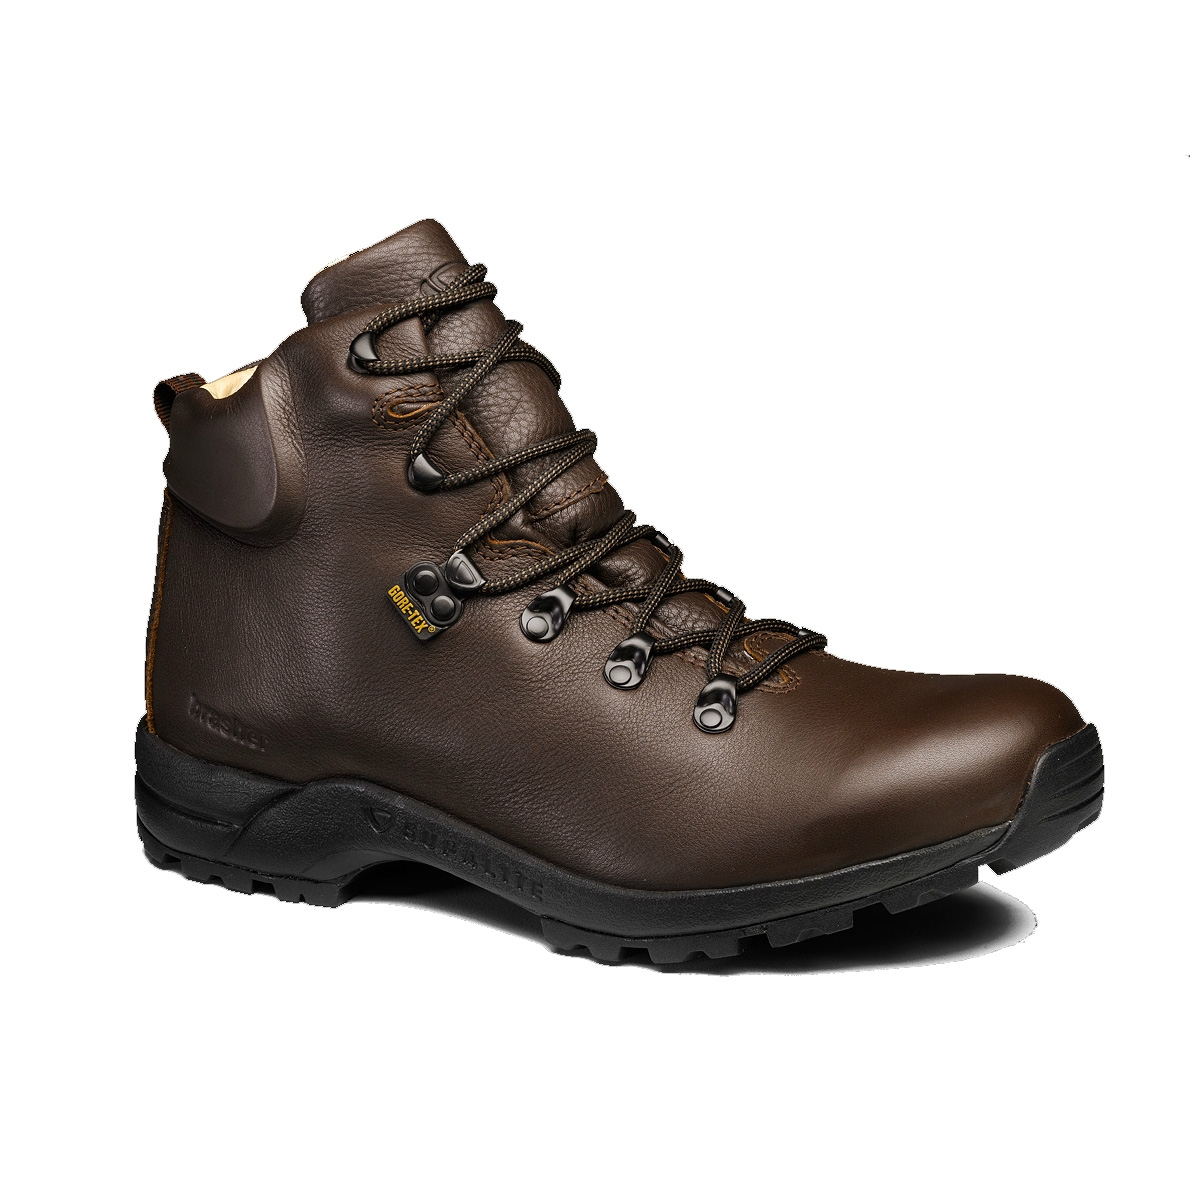 Excellent Brasher Fellmaster GTX Womens Walking Boots